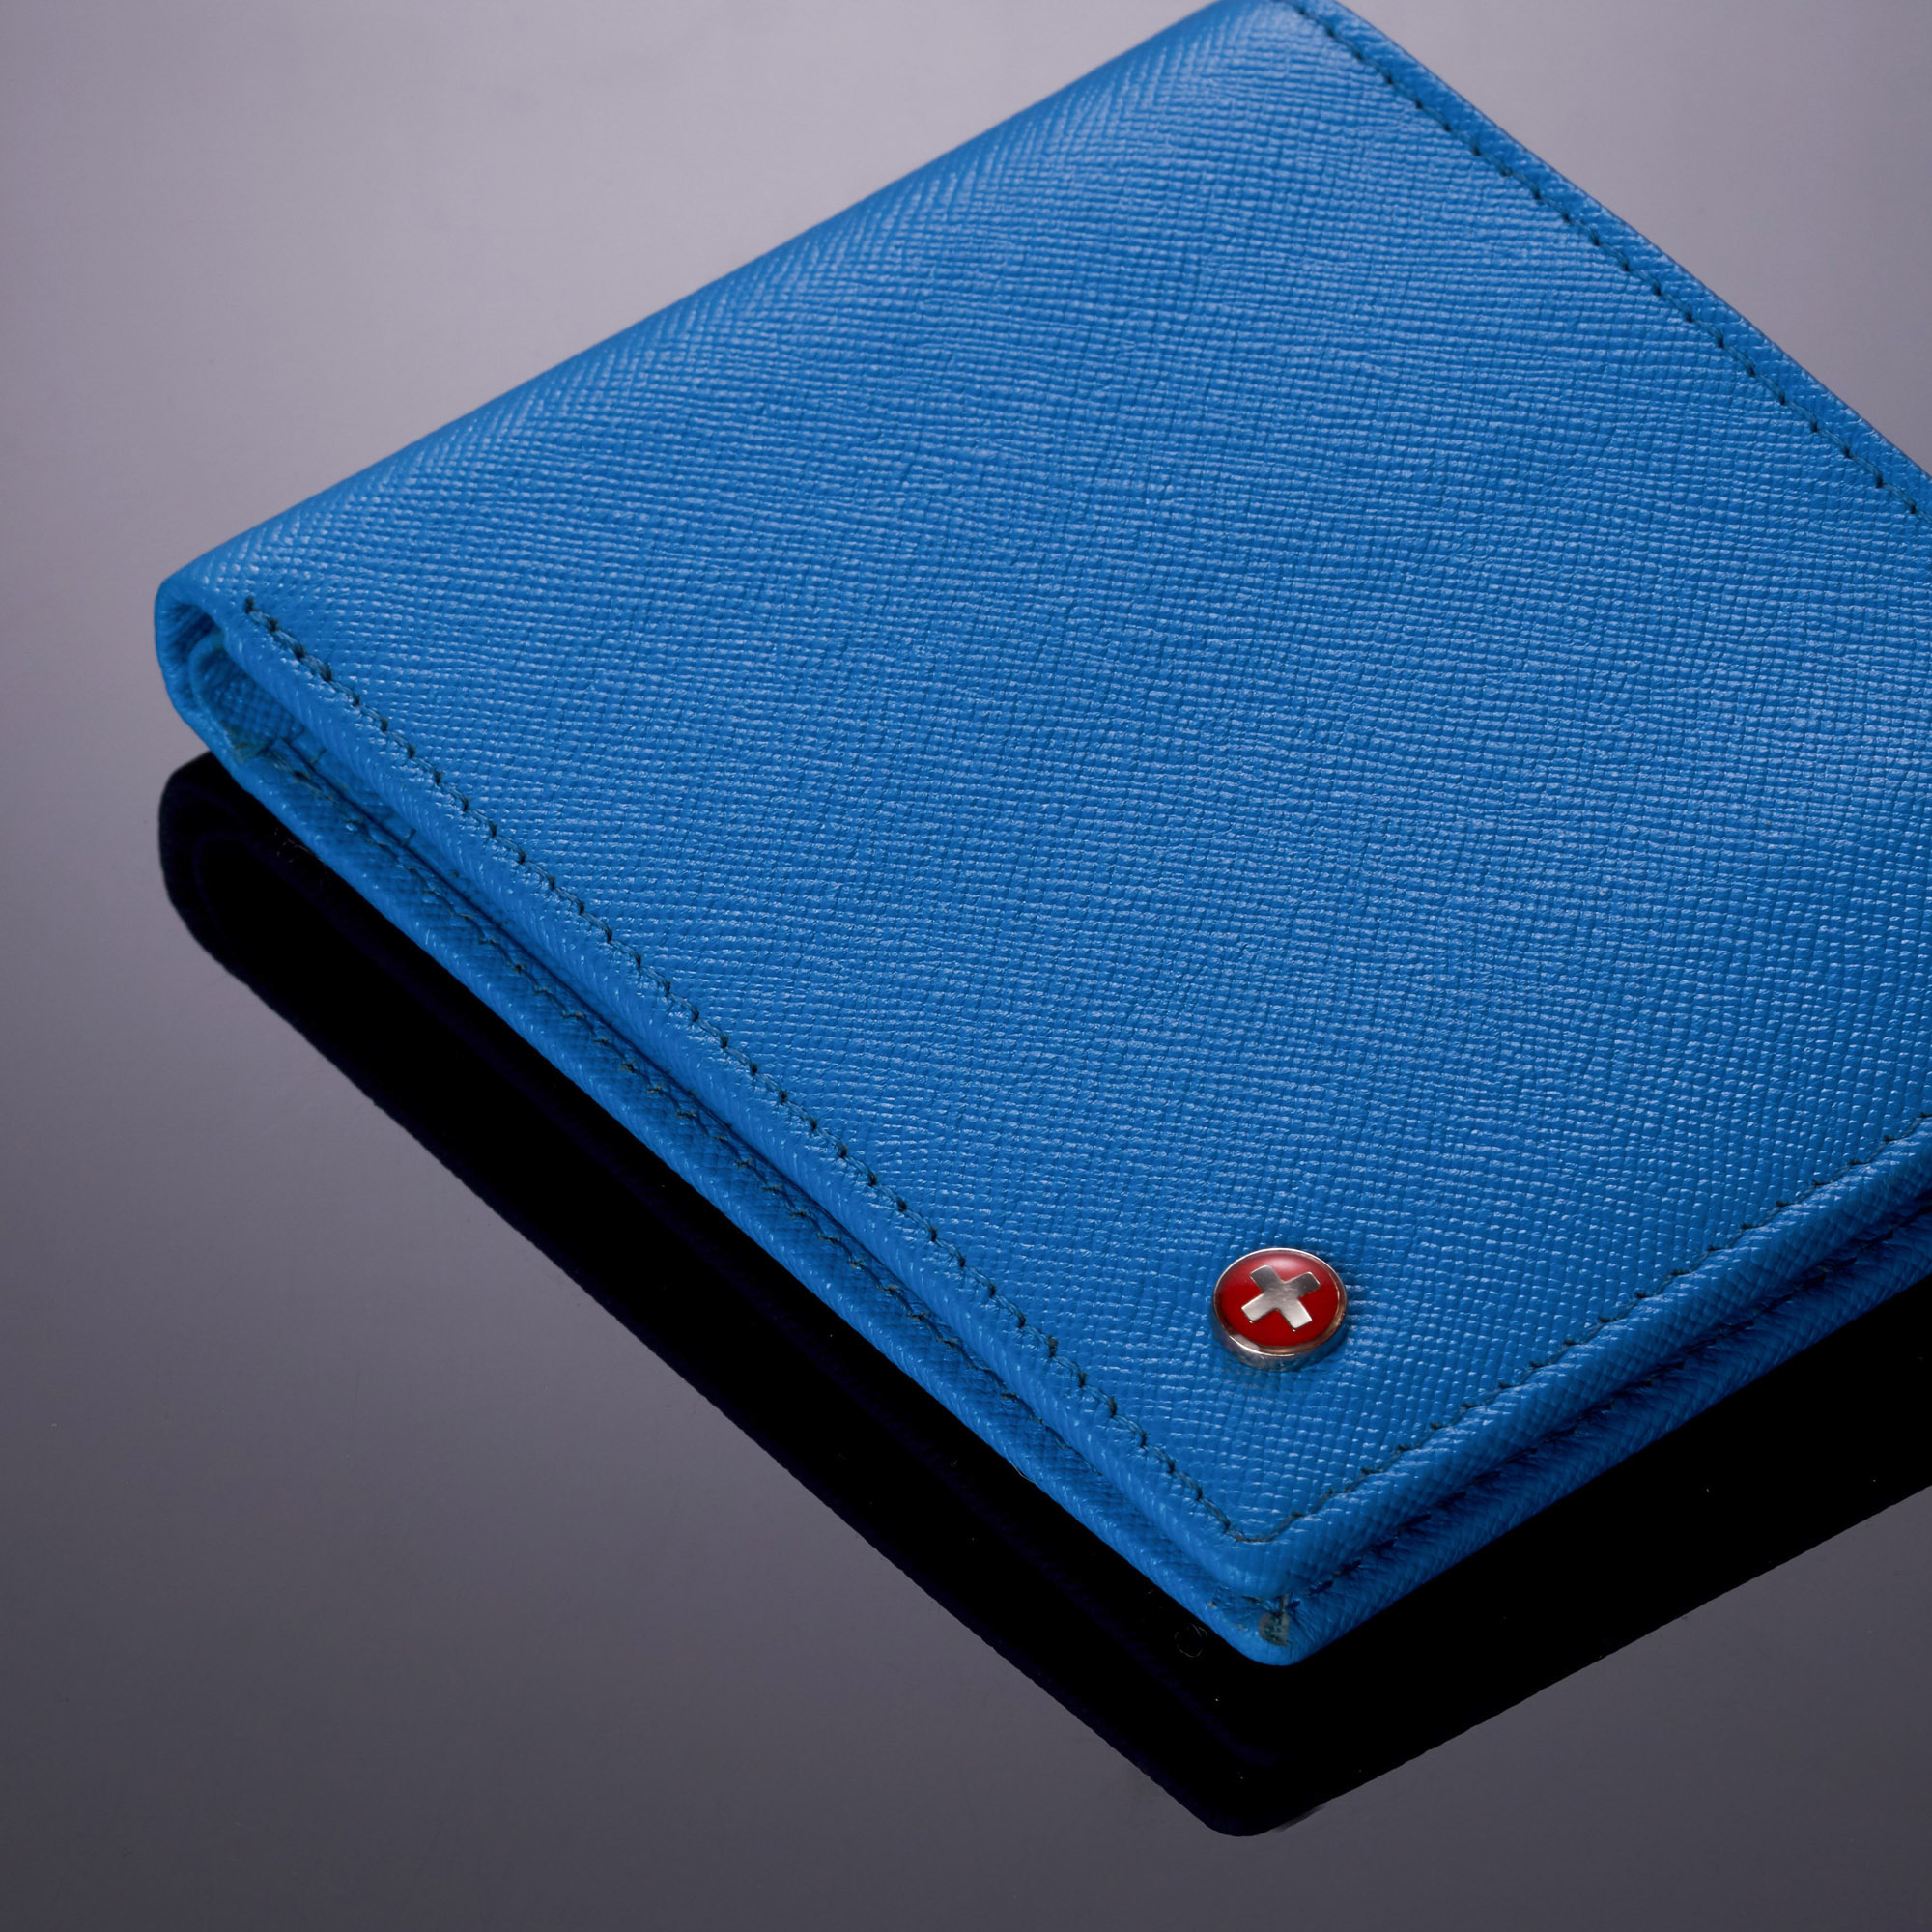 miniature 35 - Alpine-Swiss-RFID-Mens-Wallet-Deluxe-Capacity-Passcase-Bifold-Two-Bill-Sections